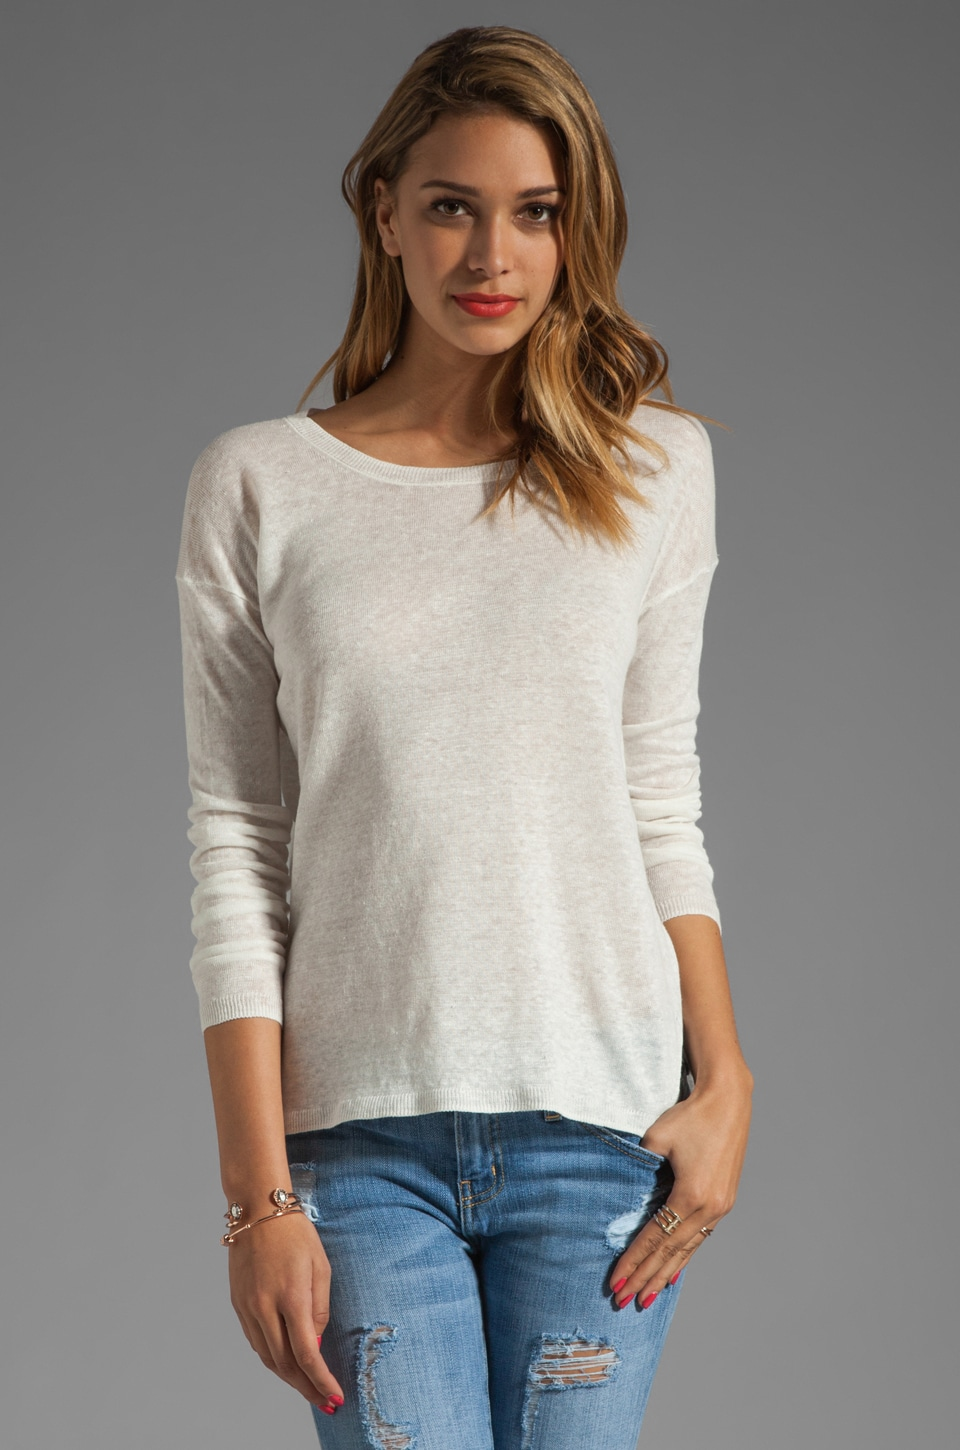 Vince Linen Sweater in White